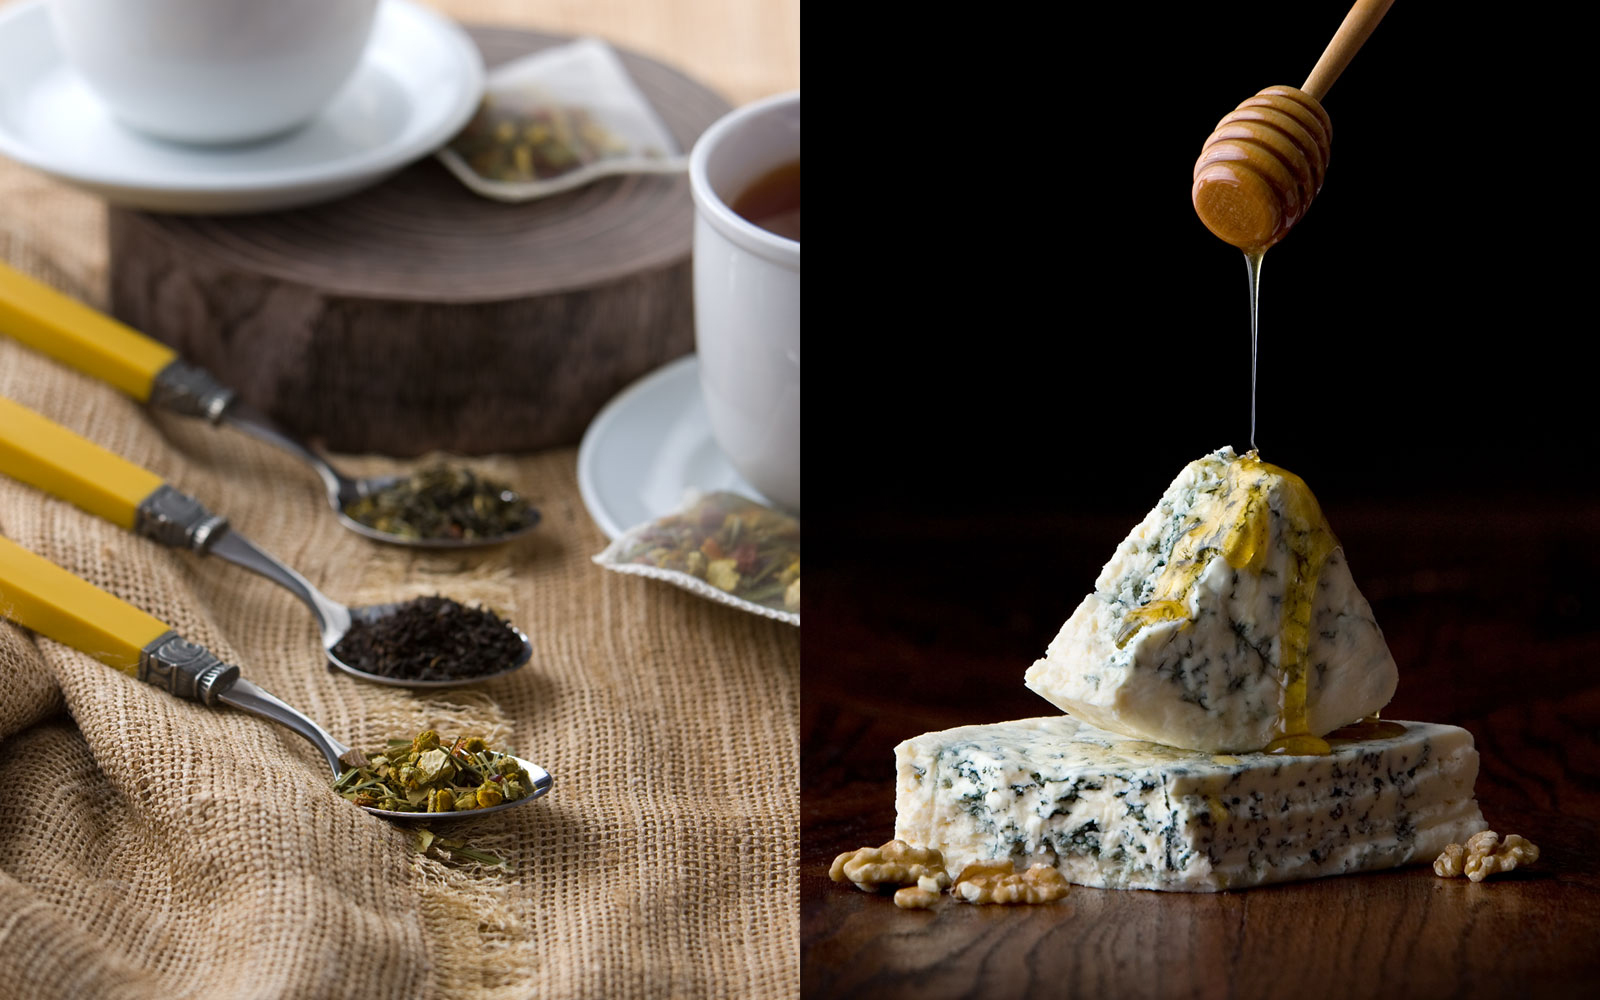 Food Photography in Dallas Texas of Cheese and Tea